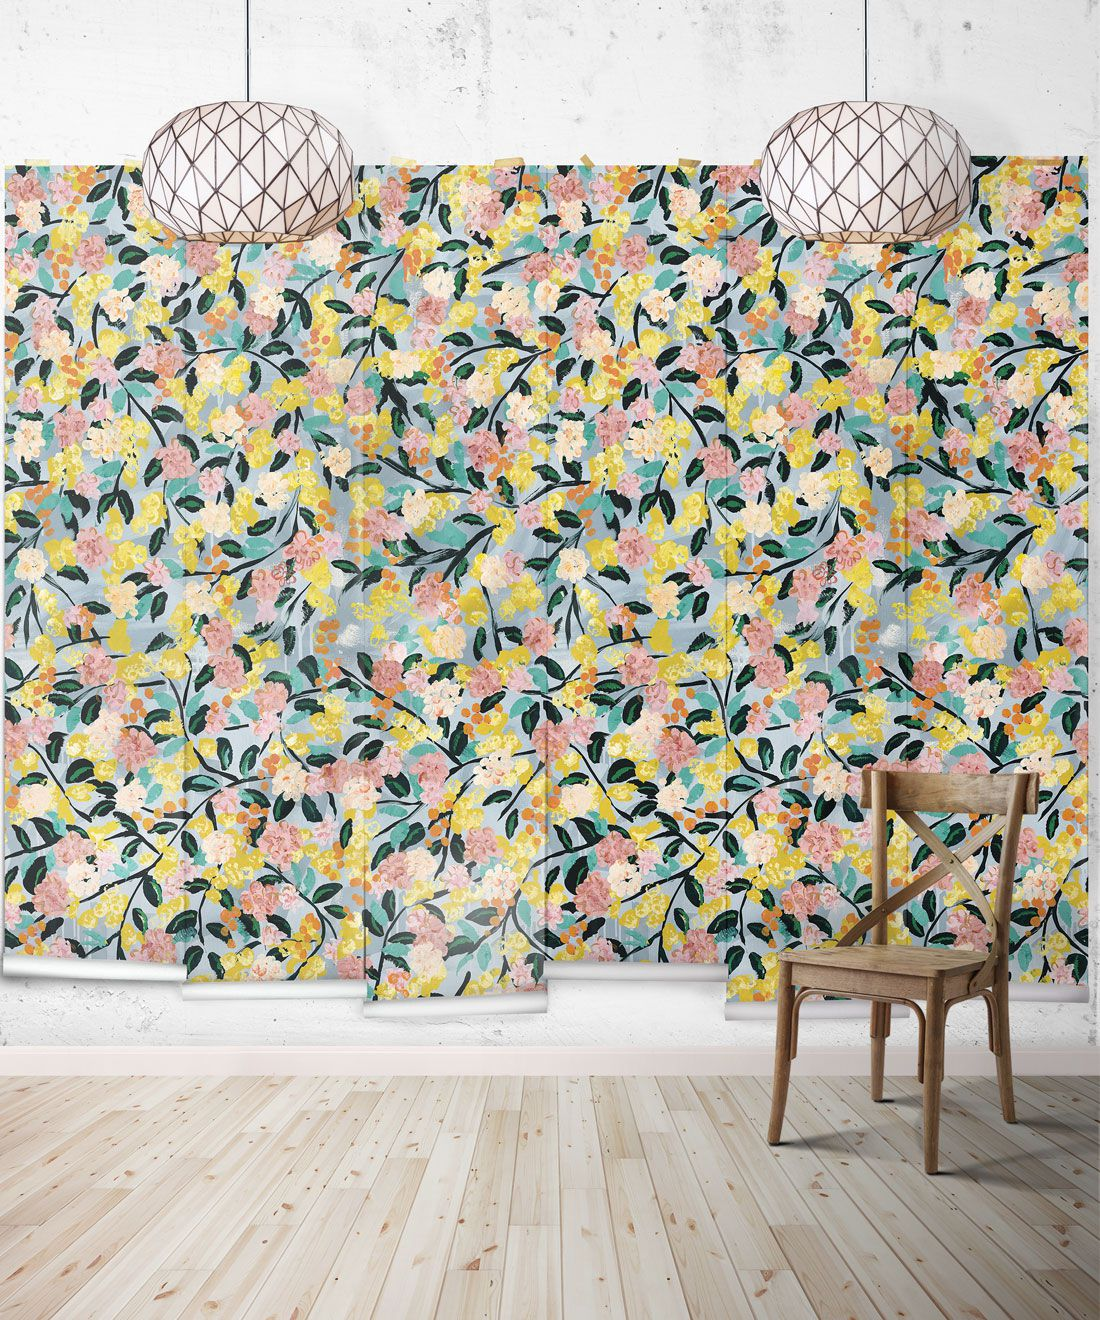 Blossom Wallpaper •Colorful Floral Wallpaper • Tiff Manuell • Abstract Expressionist Wallpaper • Insitu